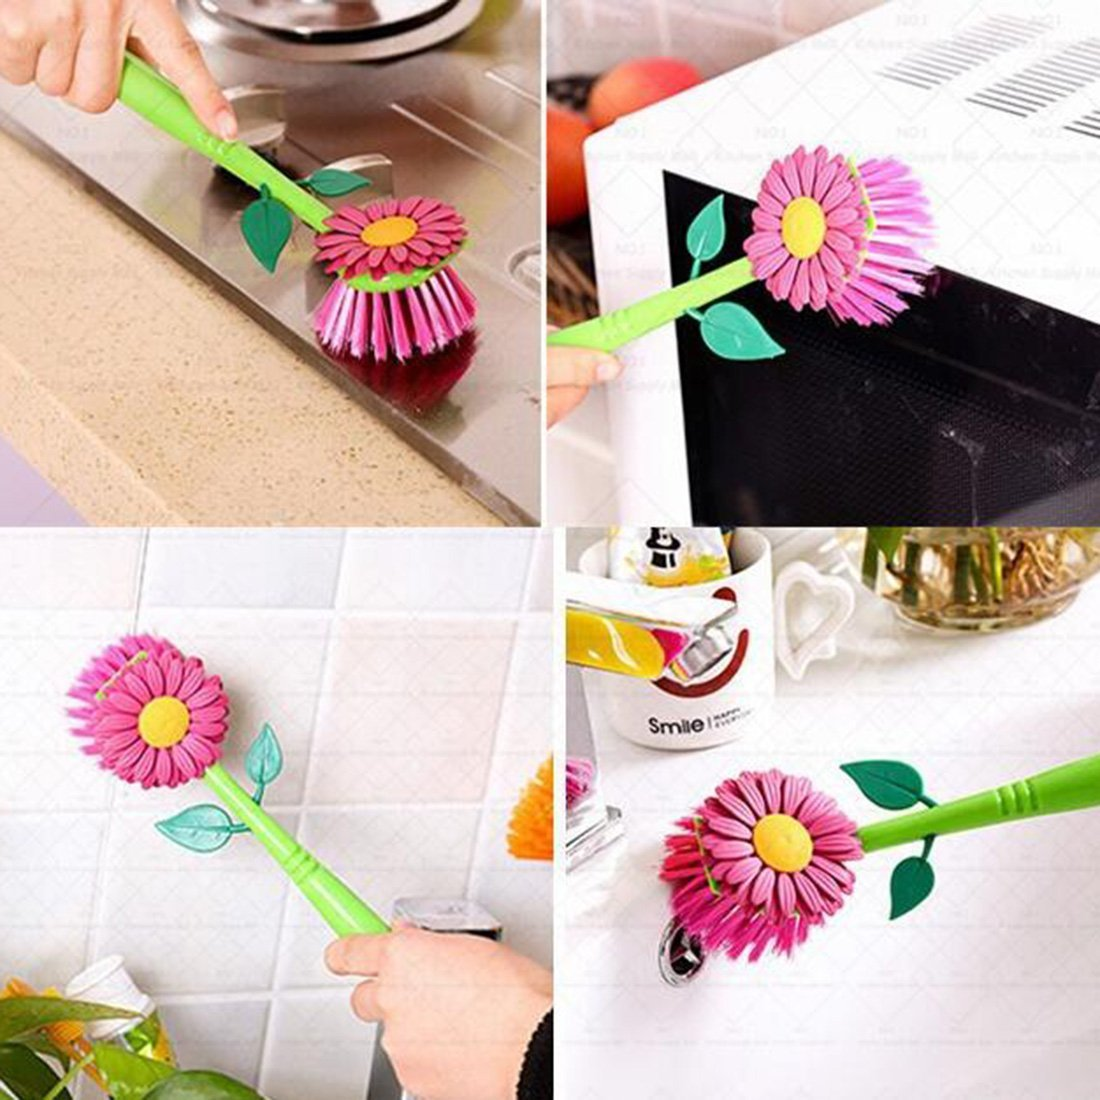 amazoncom flower kitchen sun cleaning brush pan pot brush 1pcs multi bathroom plastic brush cleaning tool random color home kitchen - Multi Bathroom 2016